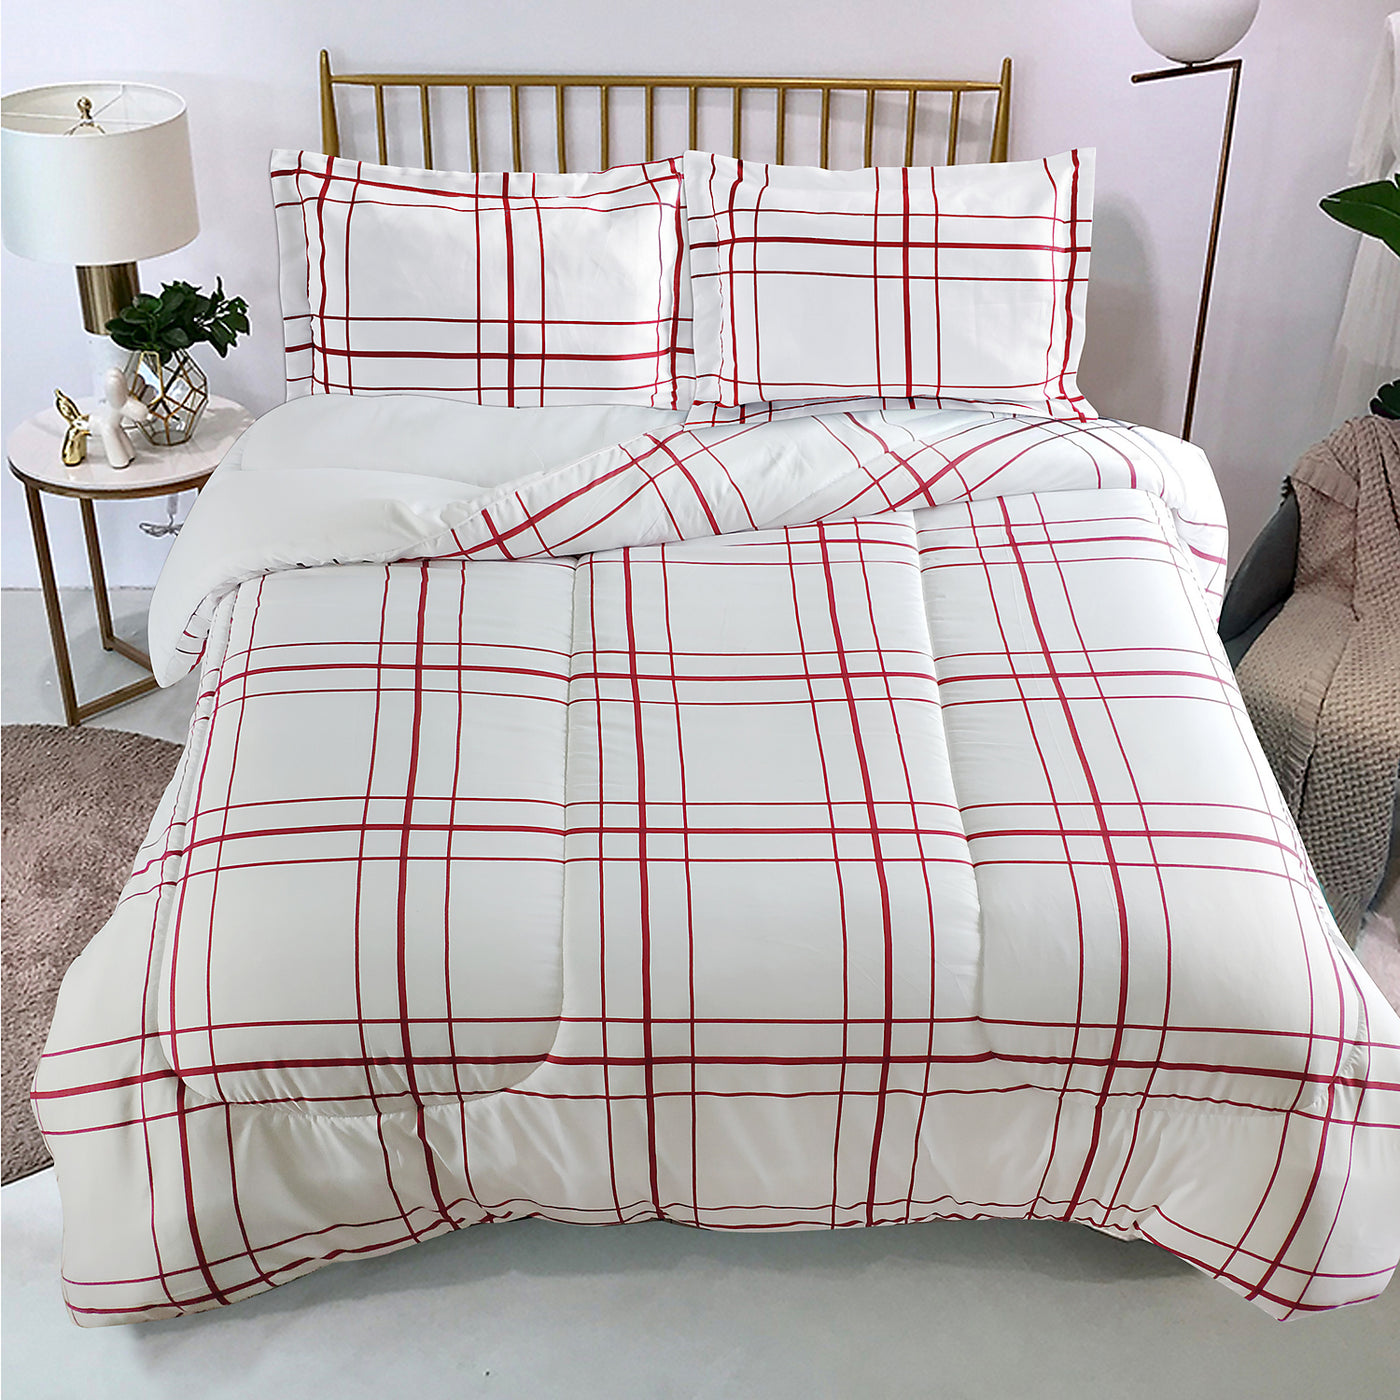 Flynn 2 Piece Twin Comforter Set Red And White The Brick